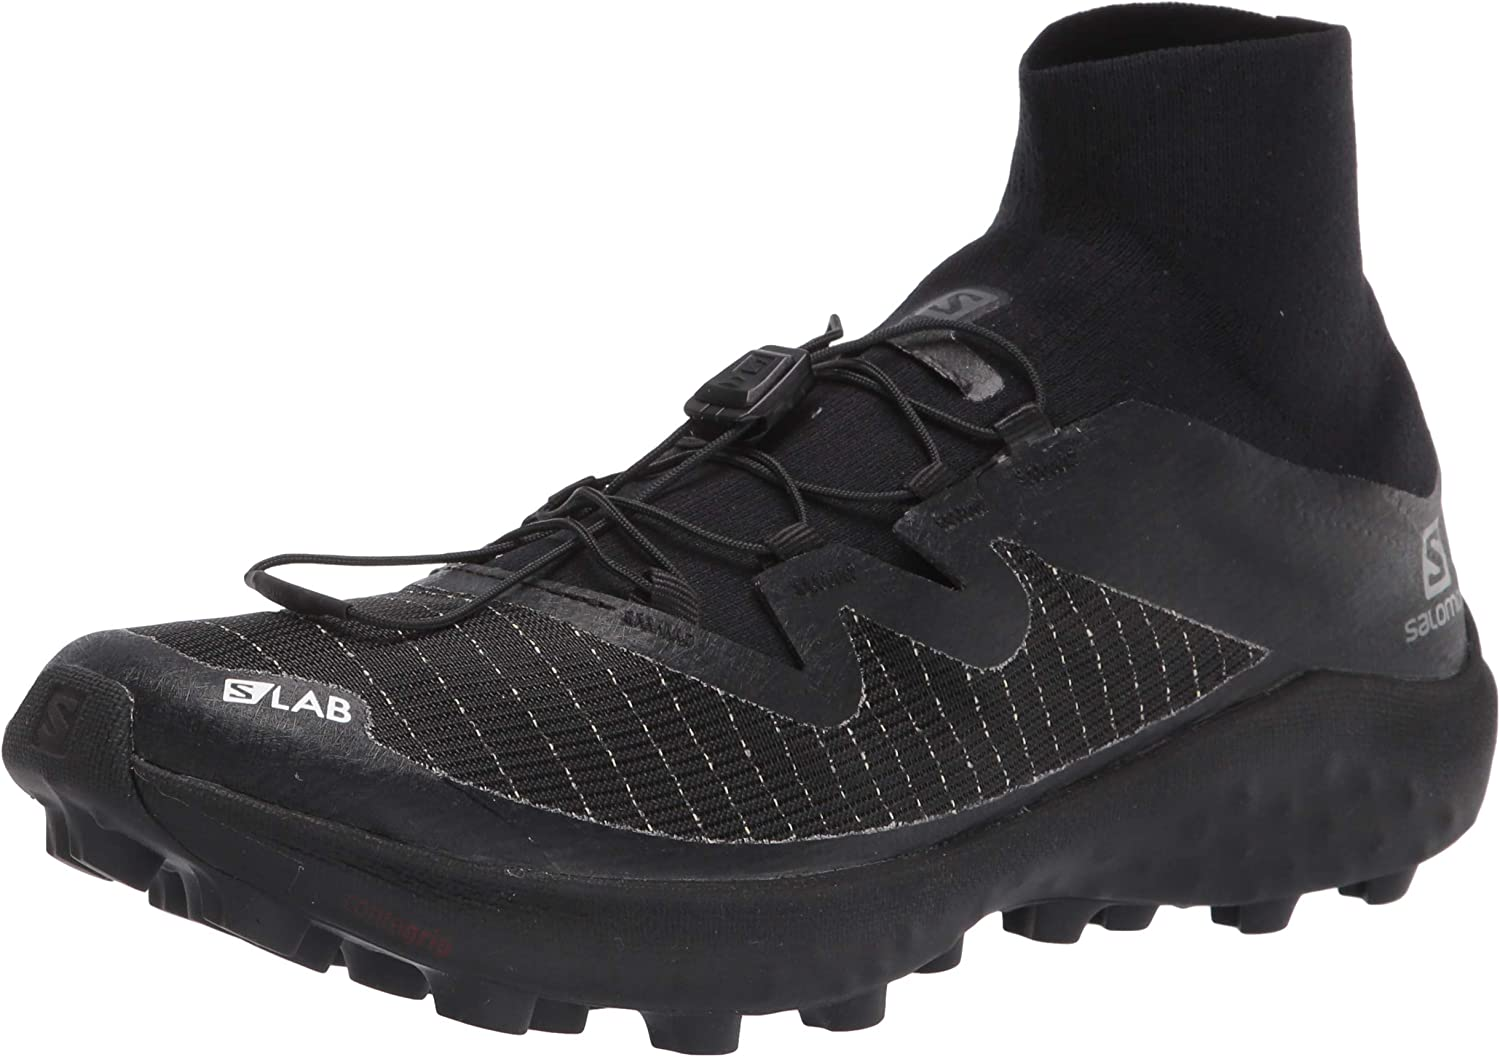 Salomon Unisex-Adult S Lab Clearance SALE! Limited time! Running Cross Endurance Cheap bargain